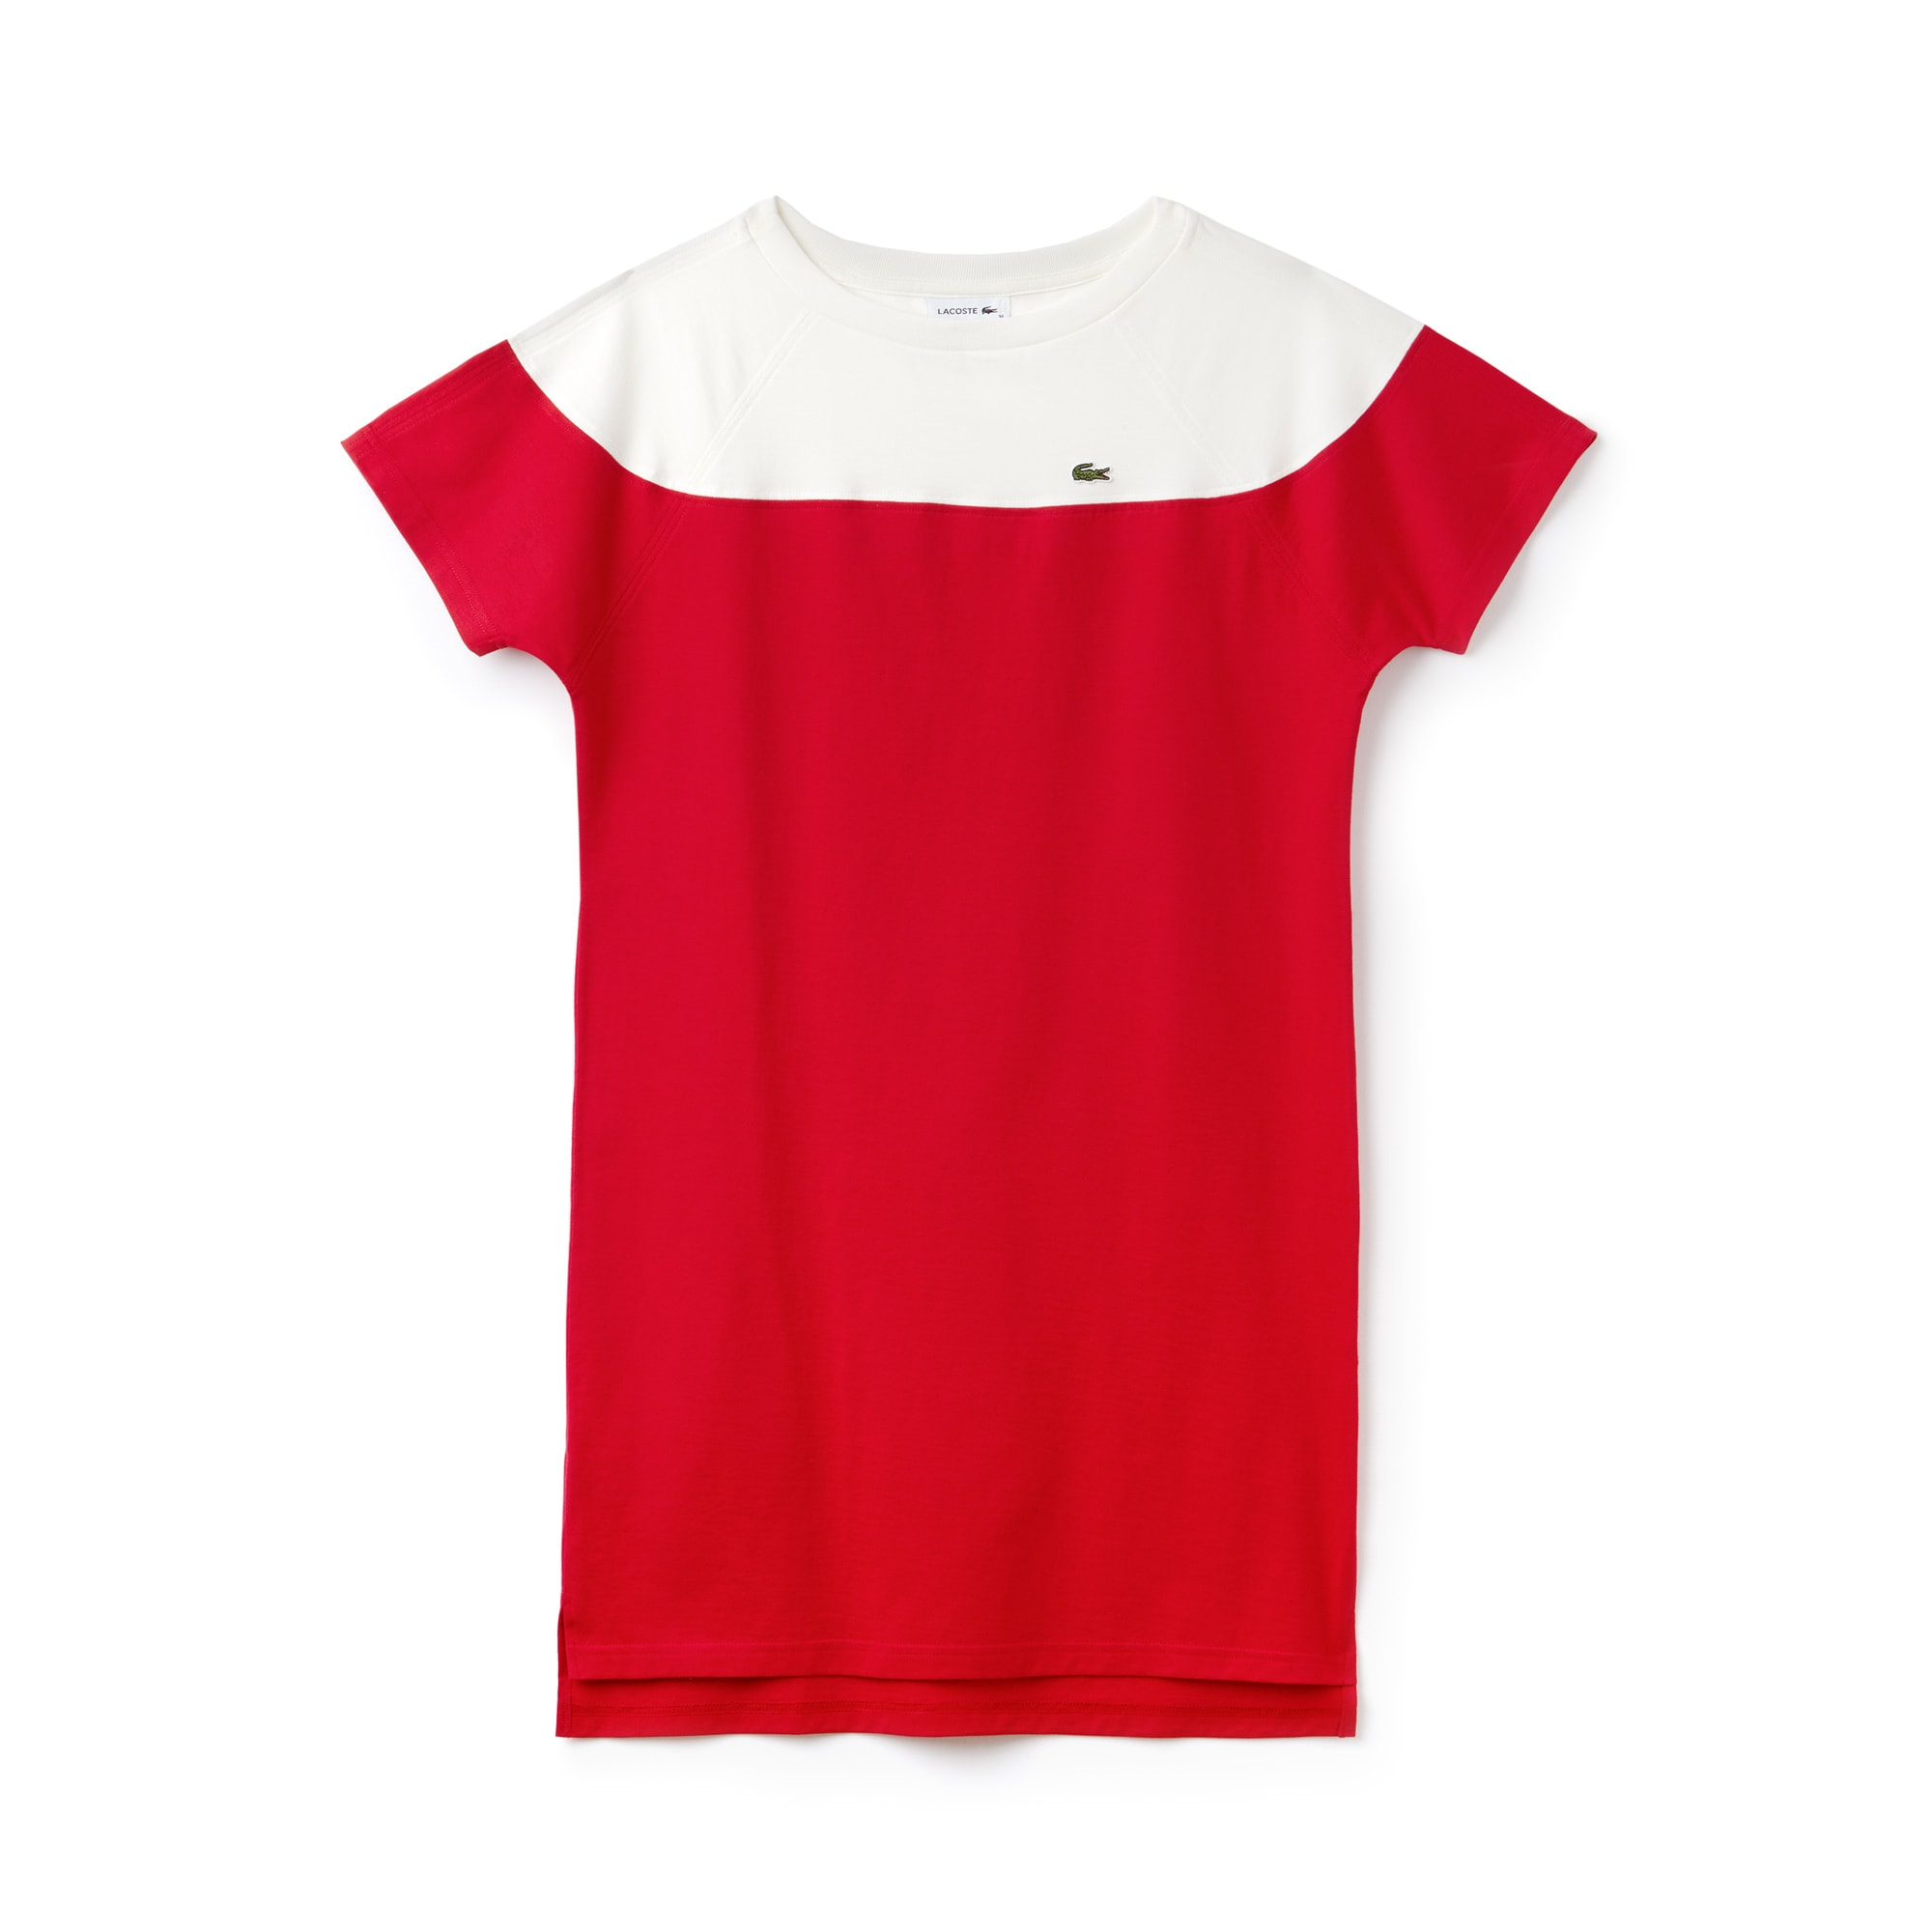 Women's Boat Neck Colorblock Cotton Jersey T-shirt Dress